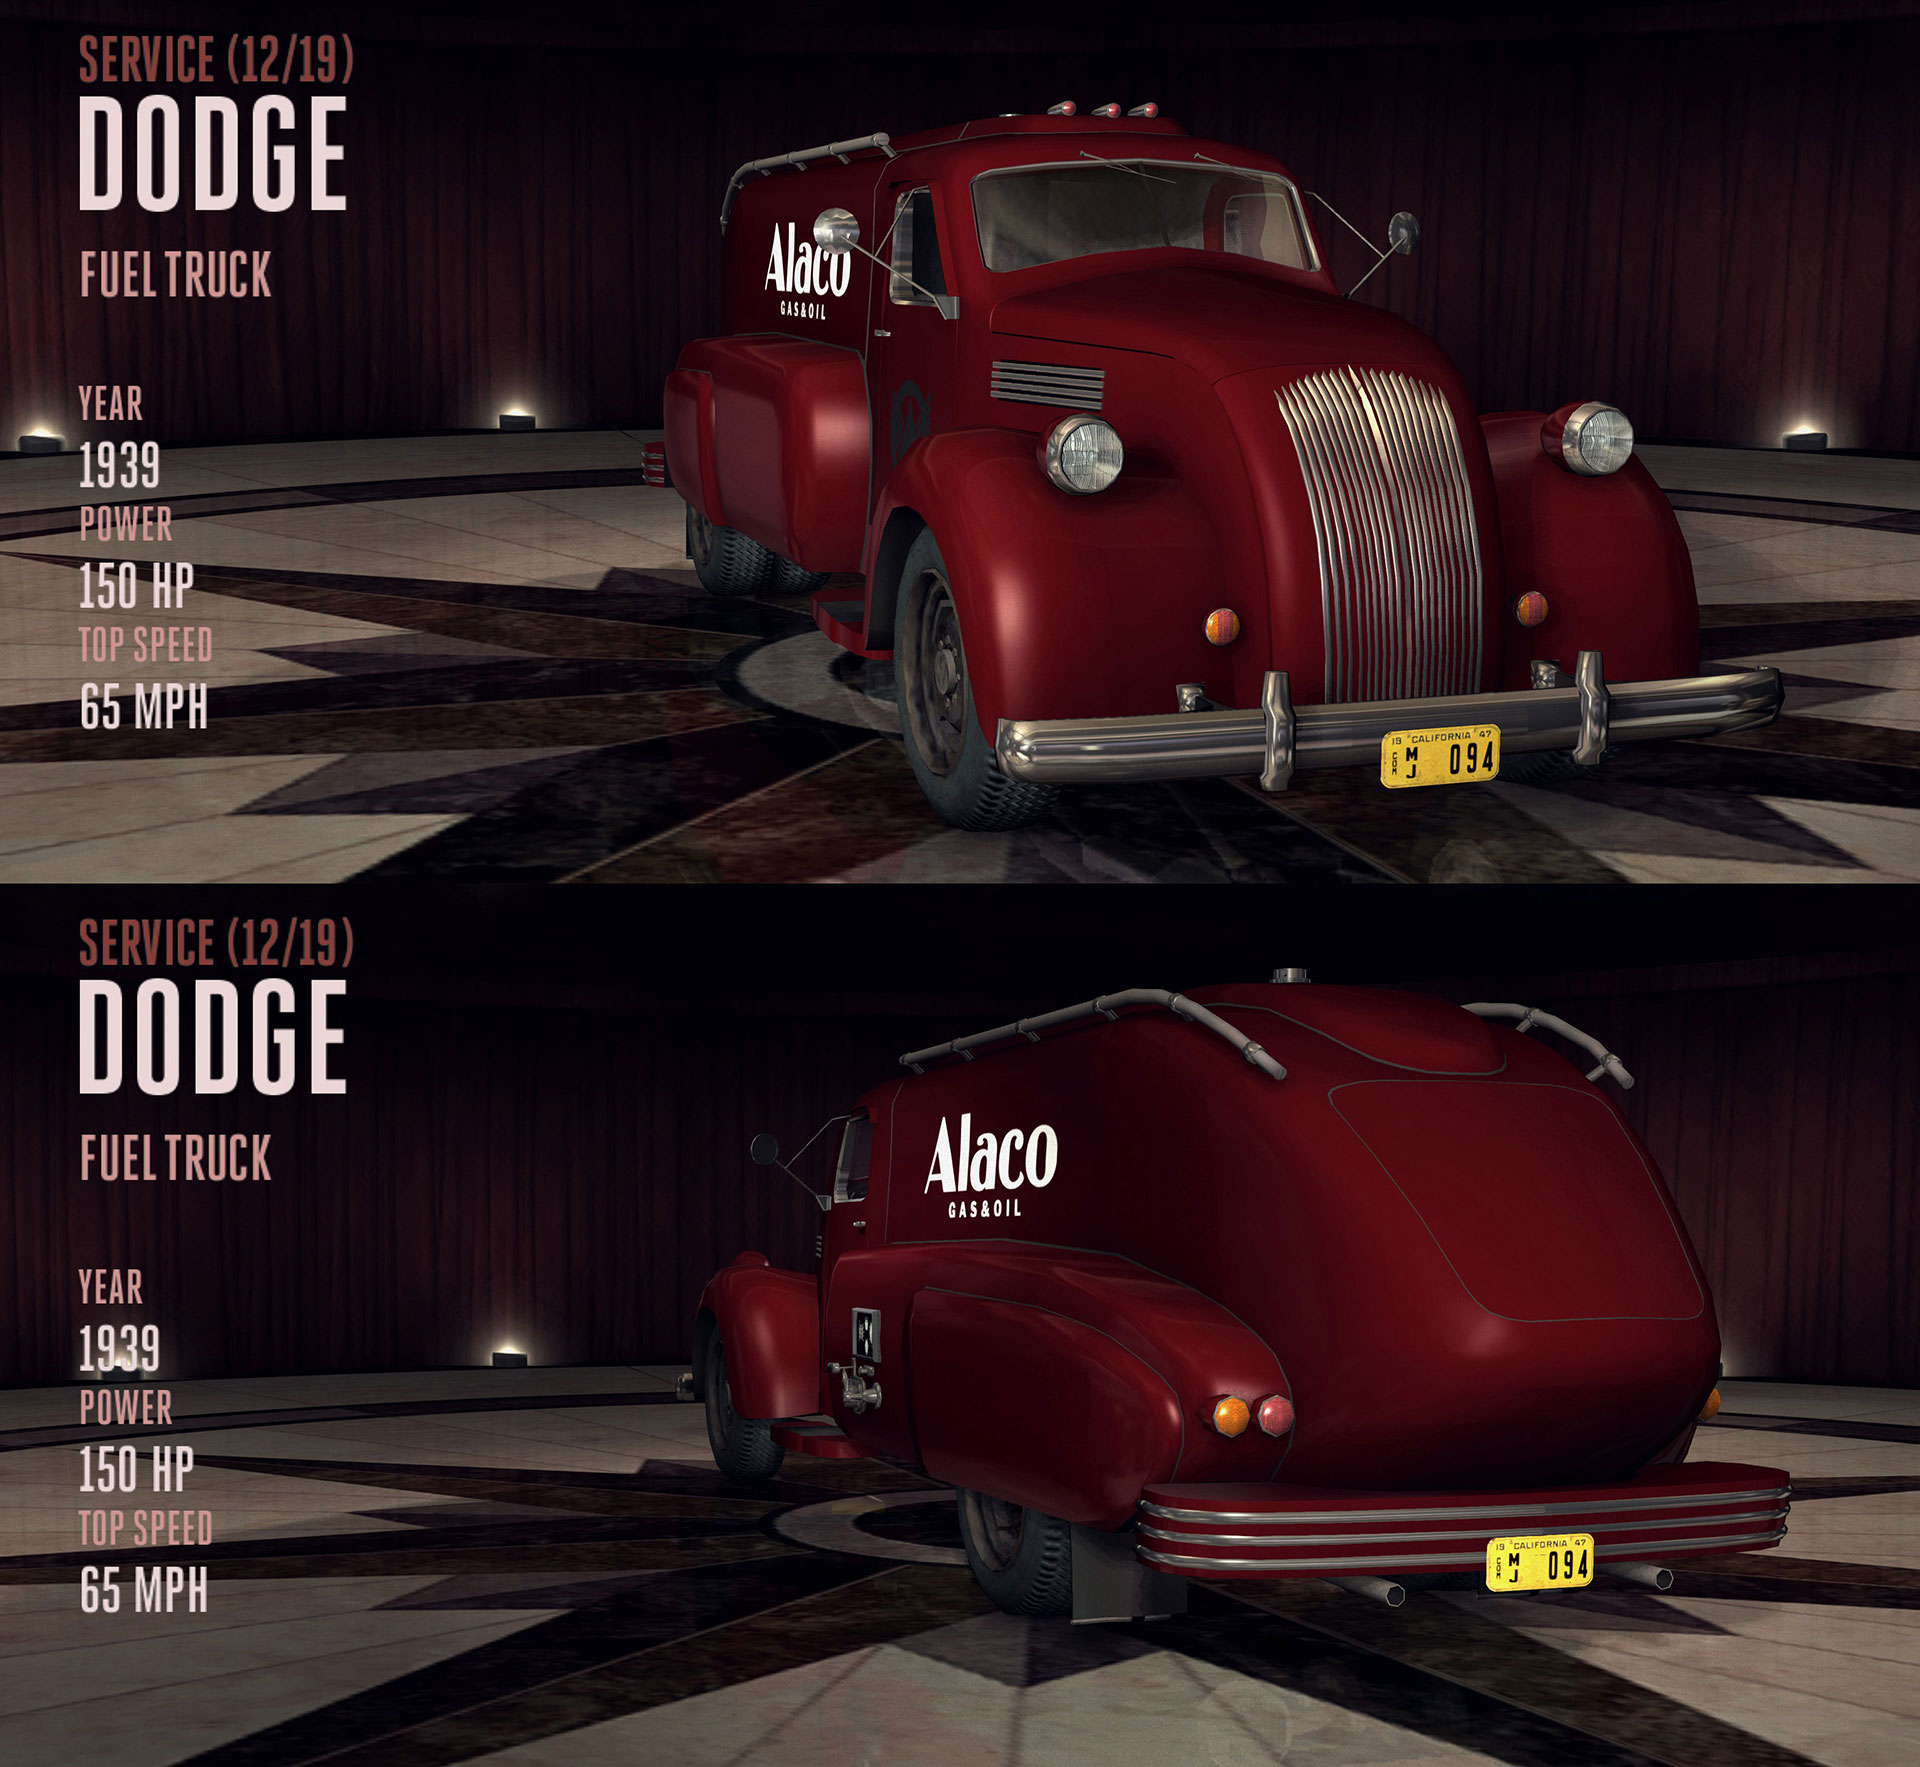 Archivo:1939-dodge-fuel-truck.jpg